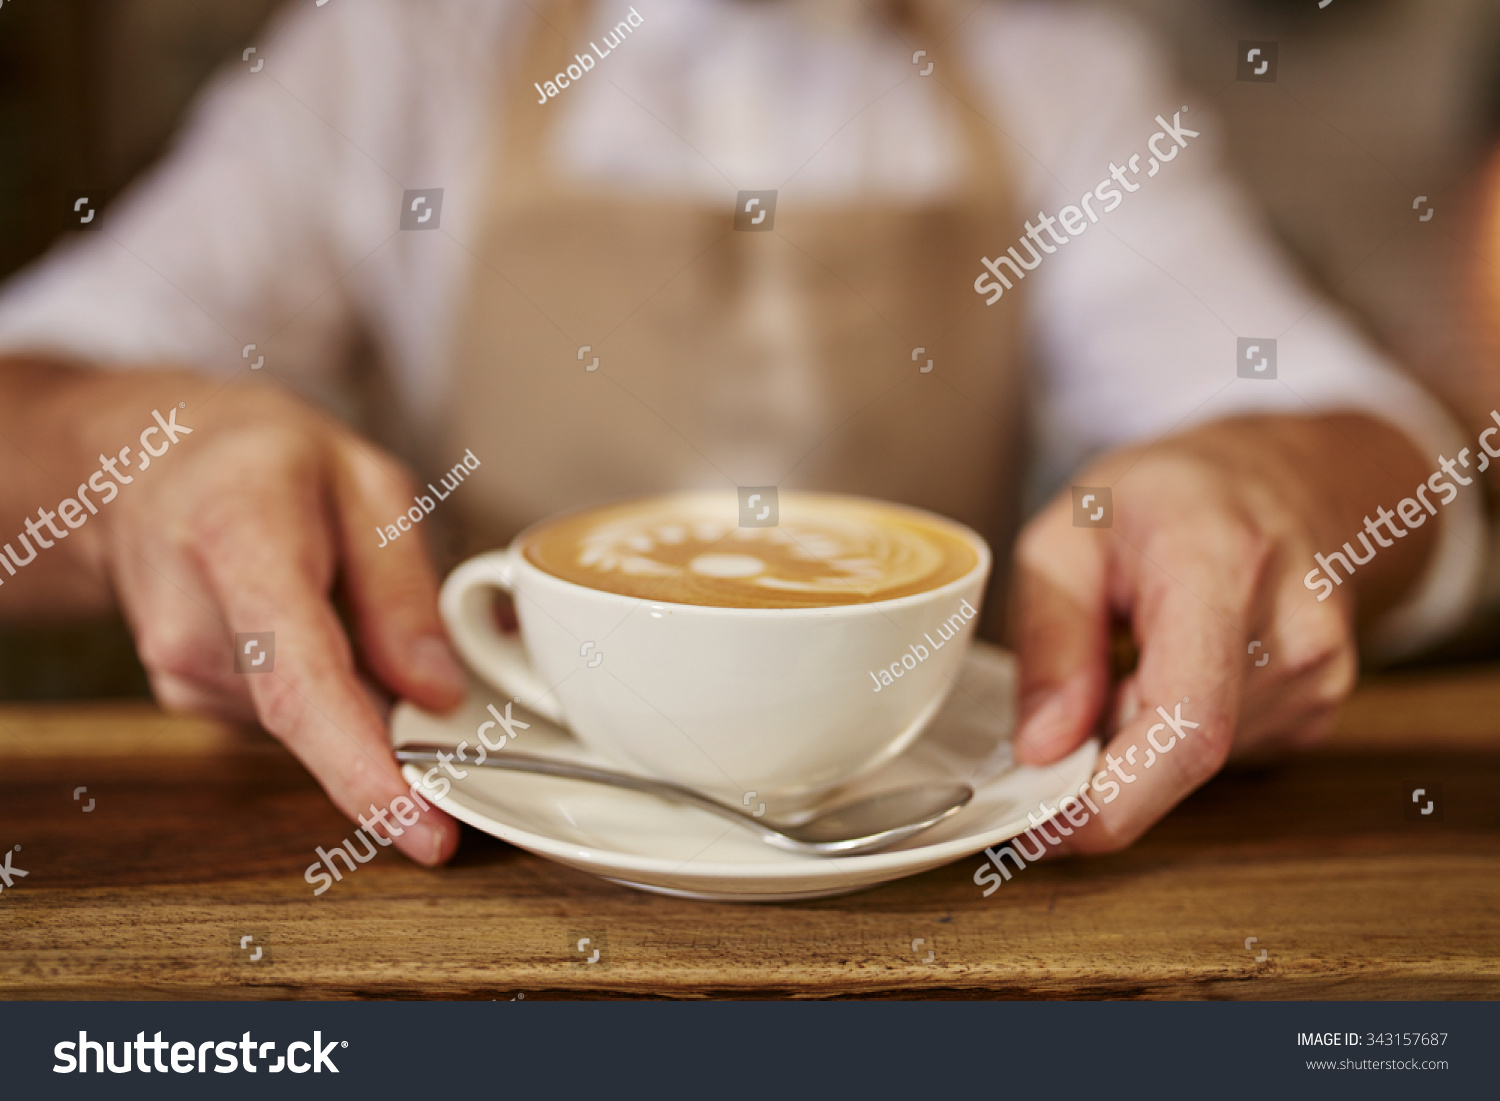 close man serving coffee while standing stock photo 343157687 shutterstock. Black Bedroom Furniture Sets. Home Design Ideas